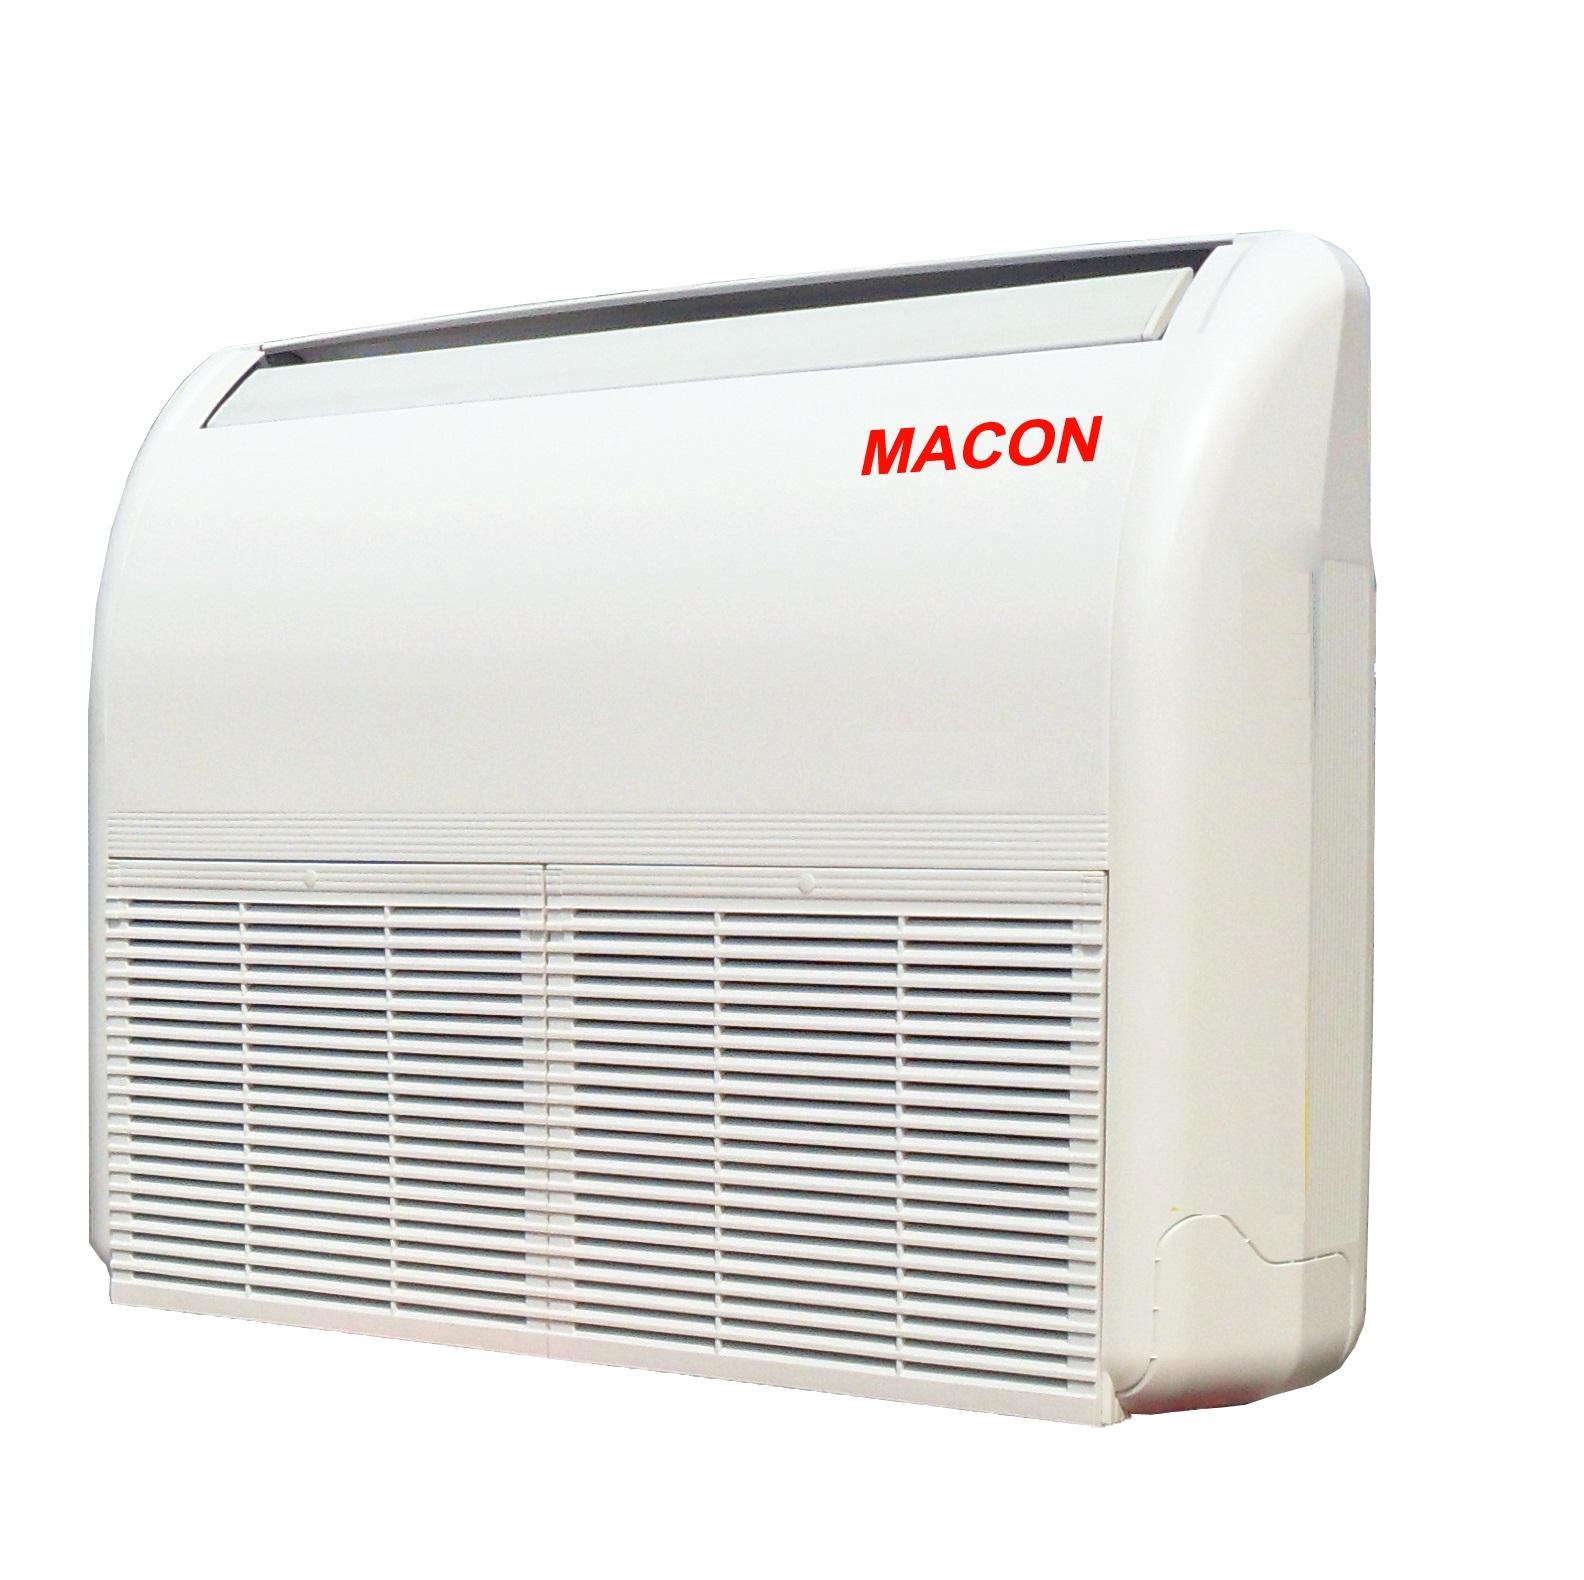 Macon Plastic 75L Heat pump dehumidifier for pool dehumidifier price